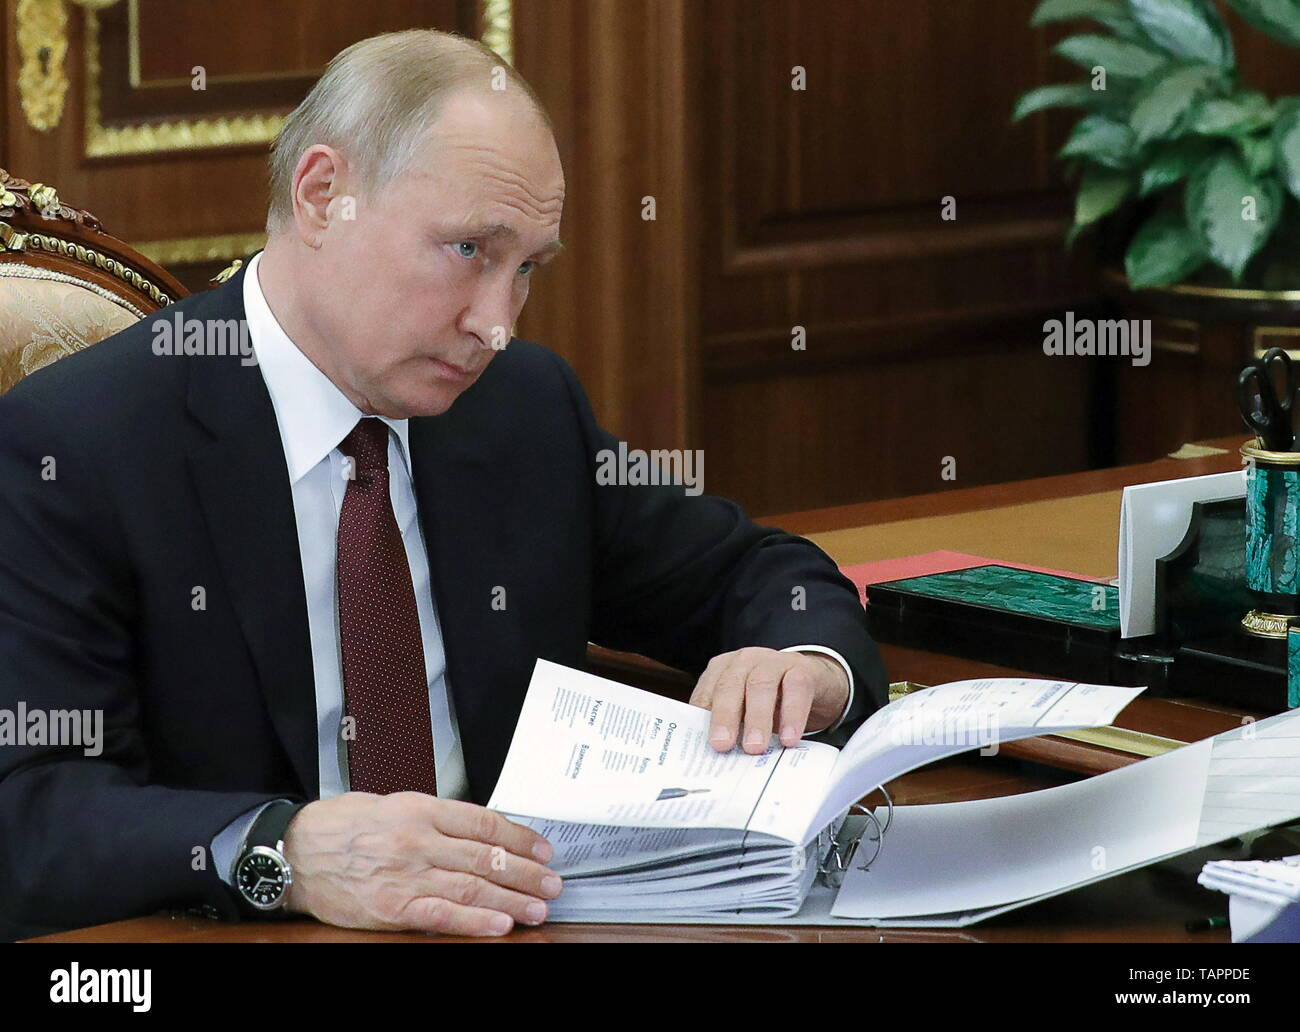 Moscow, Russia. 27th May, 2019. MOSCOW, RUSSIA - MAY 27, 2019: Russia's President Vladimir Putin during a meeting with Russian Presidential Commissioner for Entrepreneurs' Rights Boris Titov at the Moscow Kremlin. Mikhail Klimentyev/Russian Presidential Press and Information Office/TASS Credit: ITAR-TASS News Agency/Alamy Live News - Stock Image